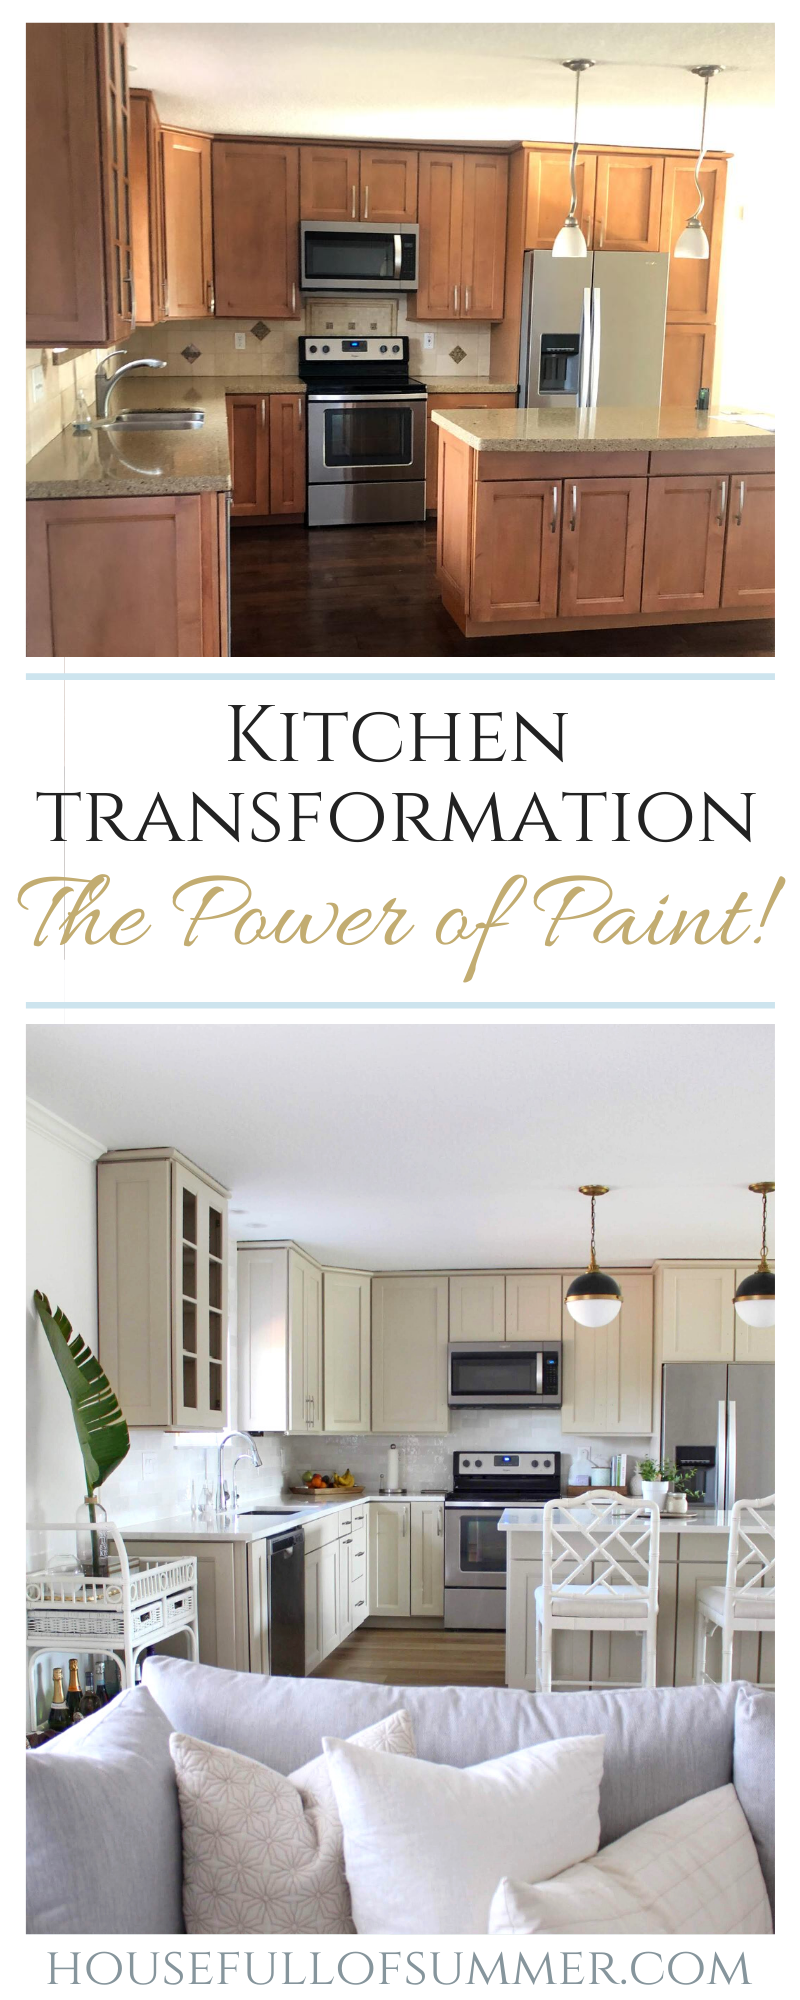 Kitchen Cabinet Paint Color Reveal Before After House Full Of Summer Coastal Home Lifestyle